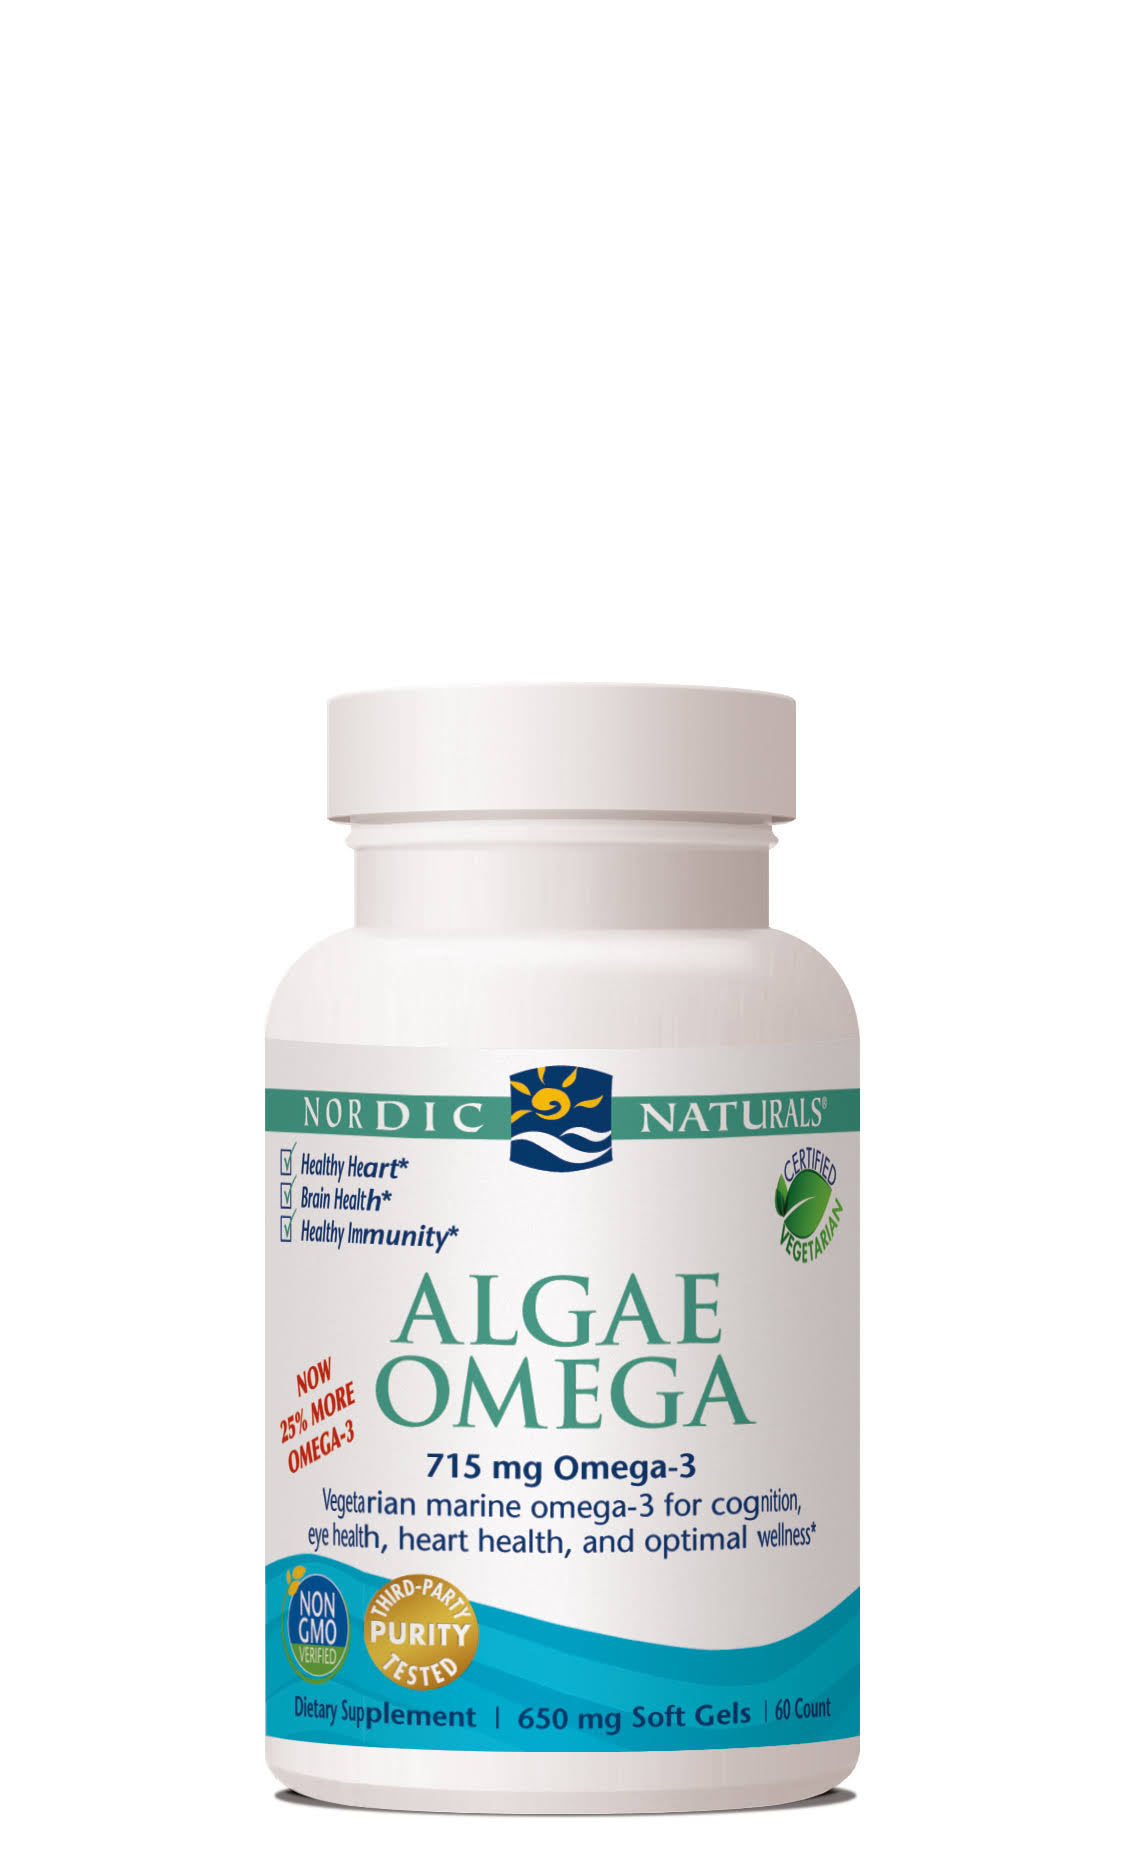 Nordic Naturals Algae Omega Dietary Supplement - 60 Softgels